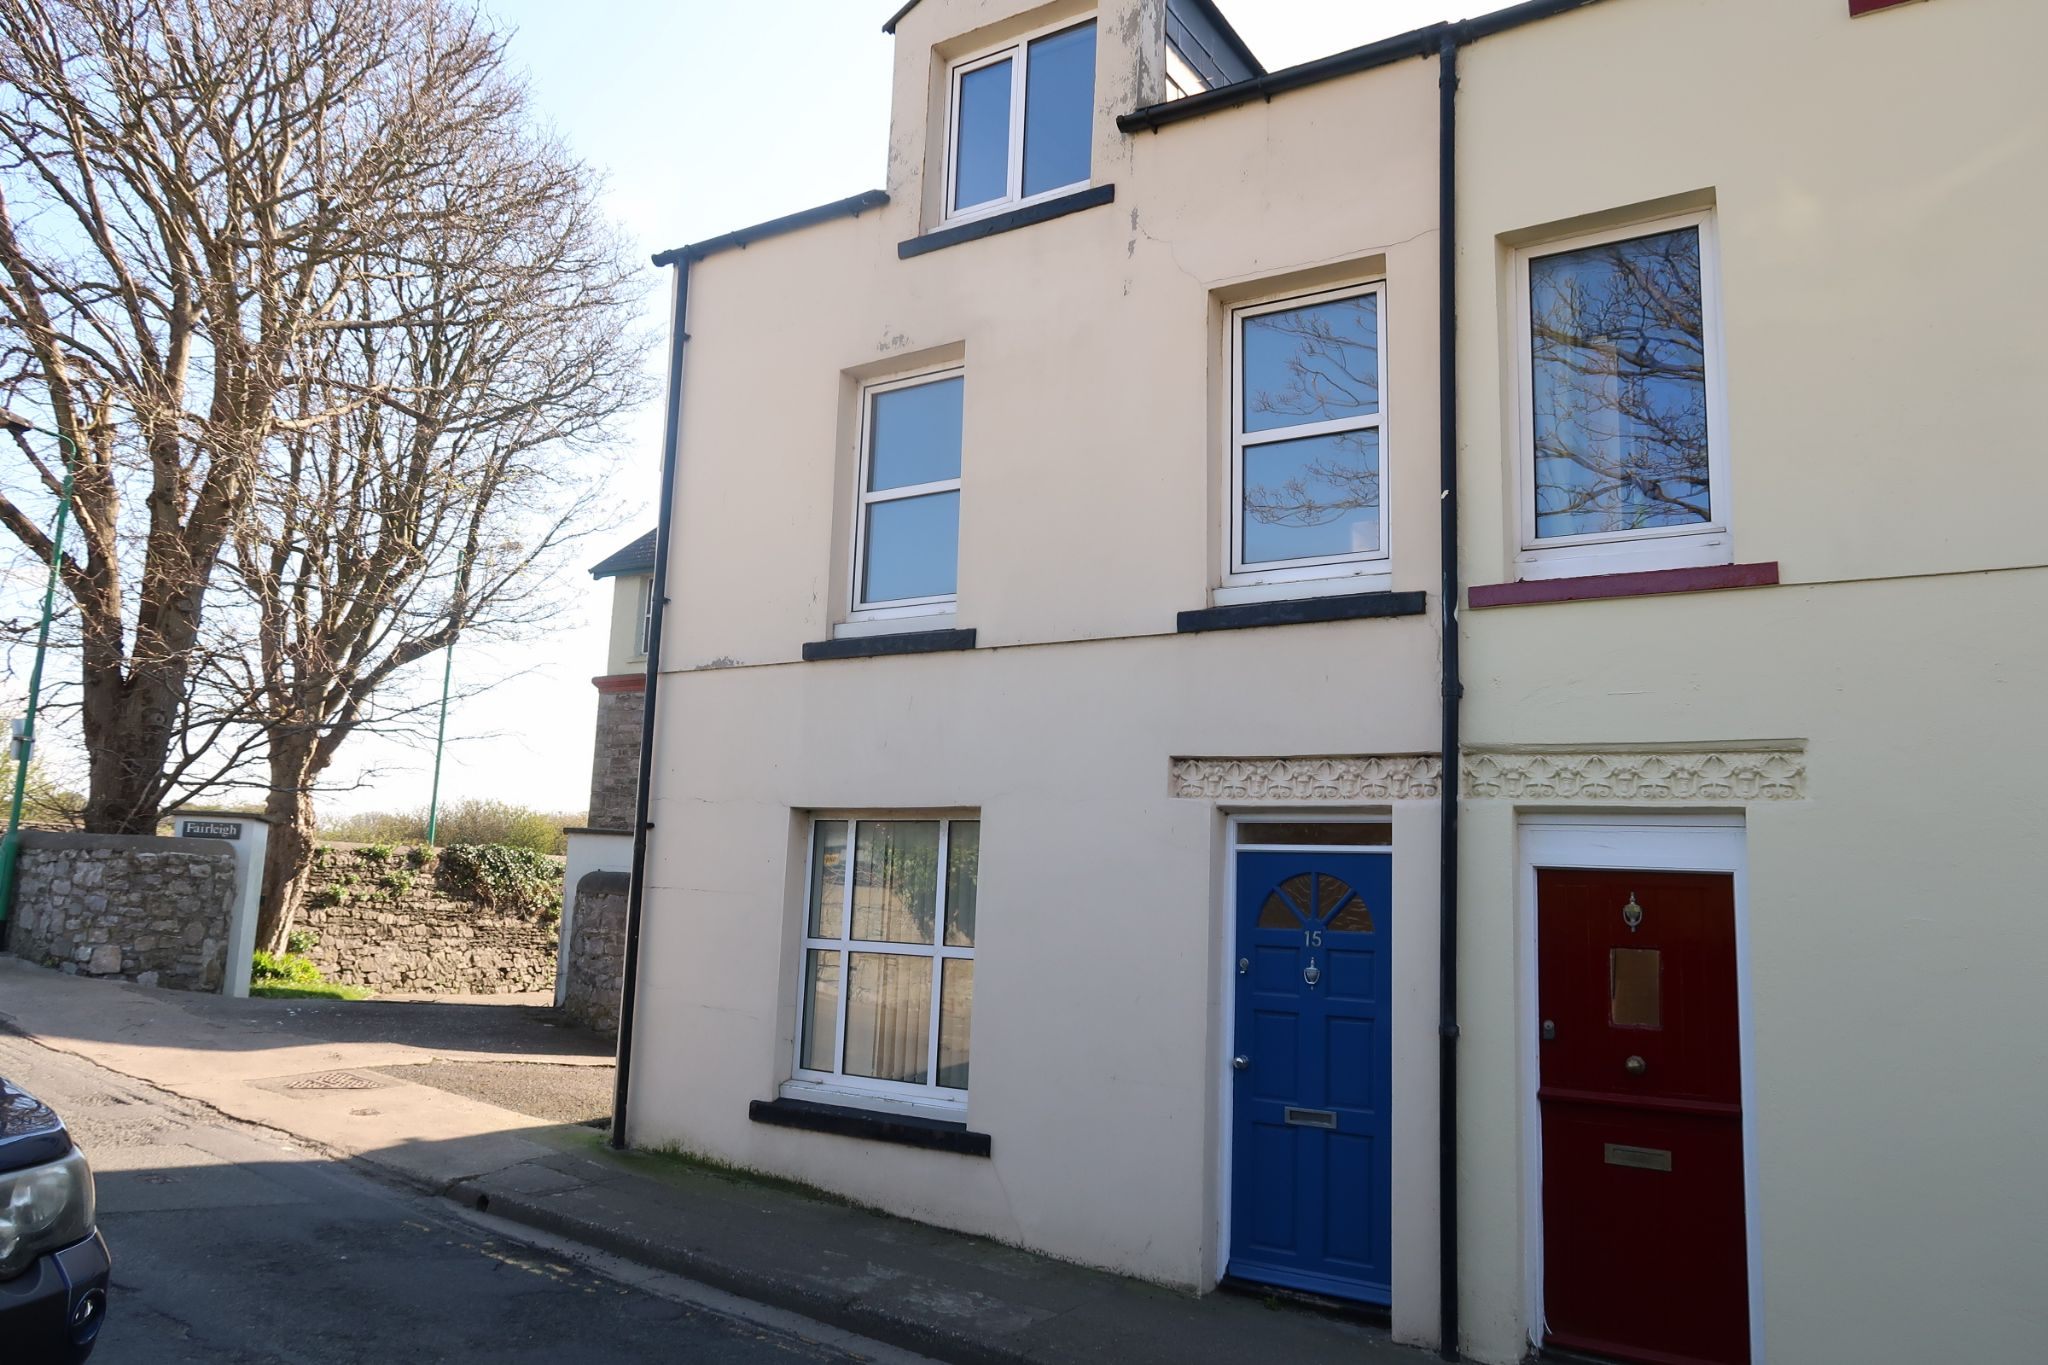 3 bedroom end terraced house Let Agreed in Castletown - Photograph 6